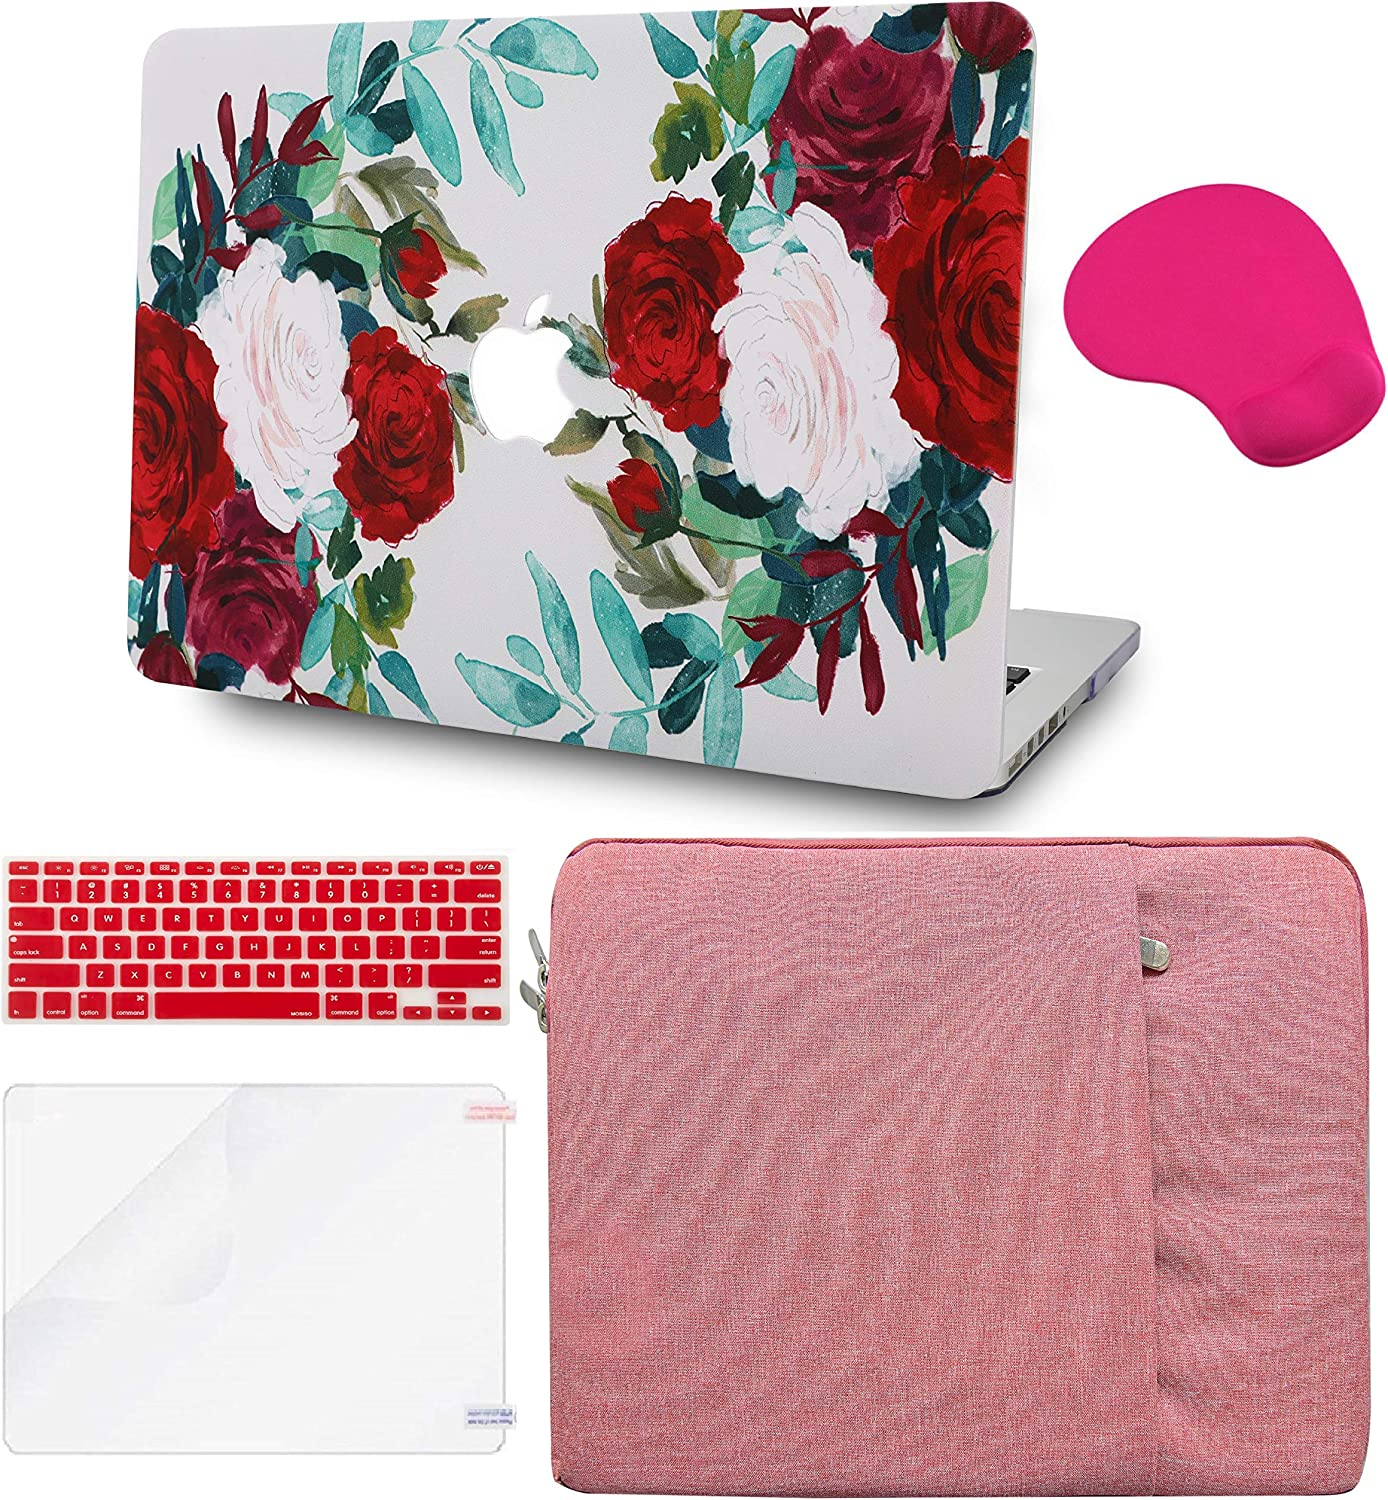 LuvCase 5in1 LaptopCase for Old Mac Pro 13